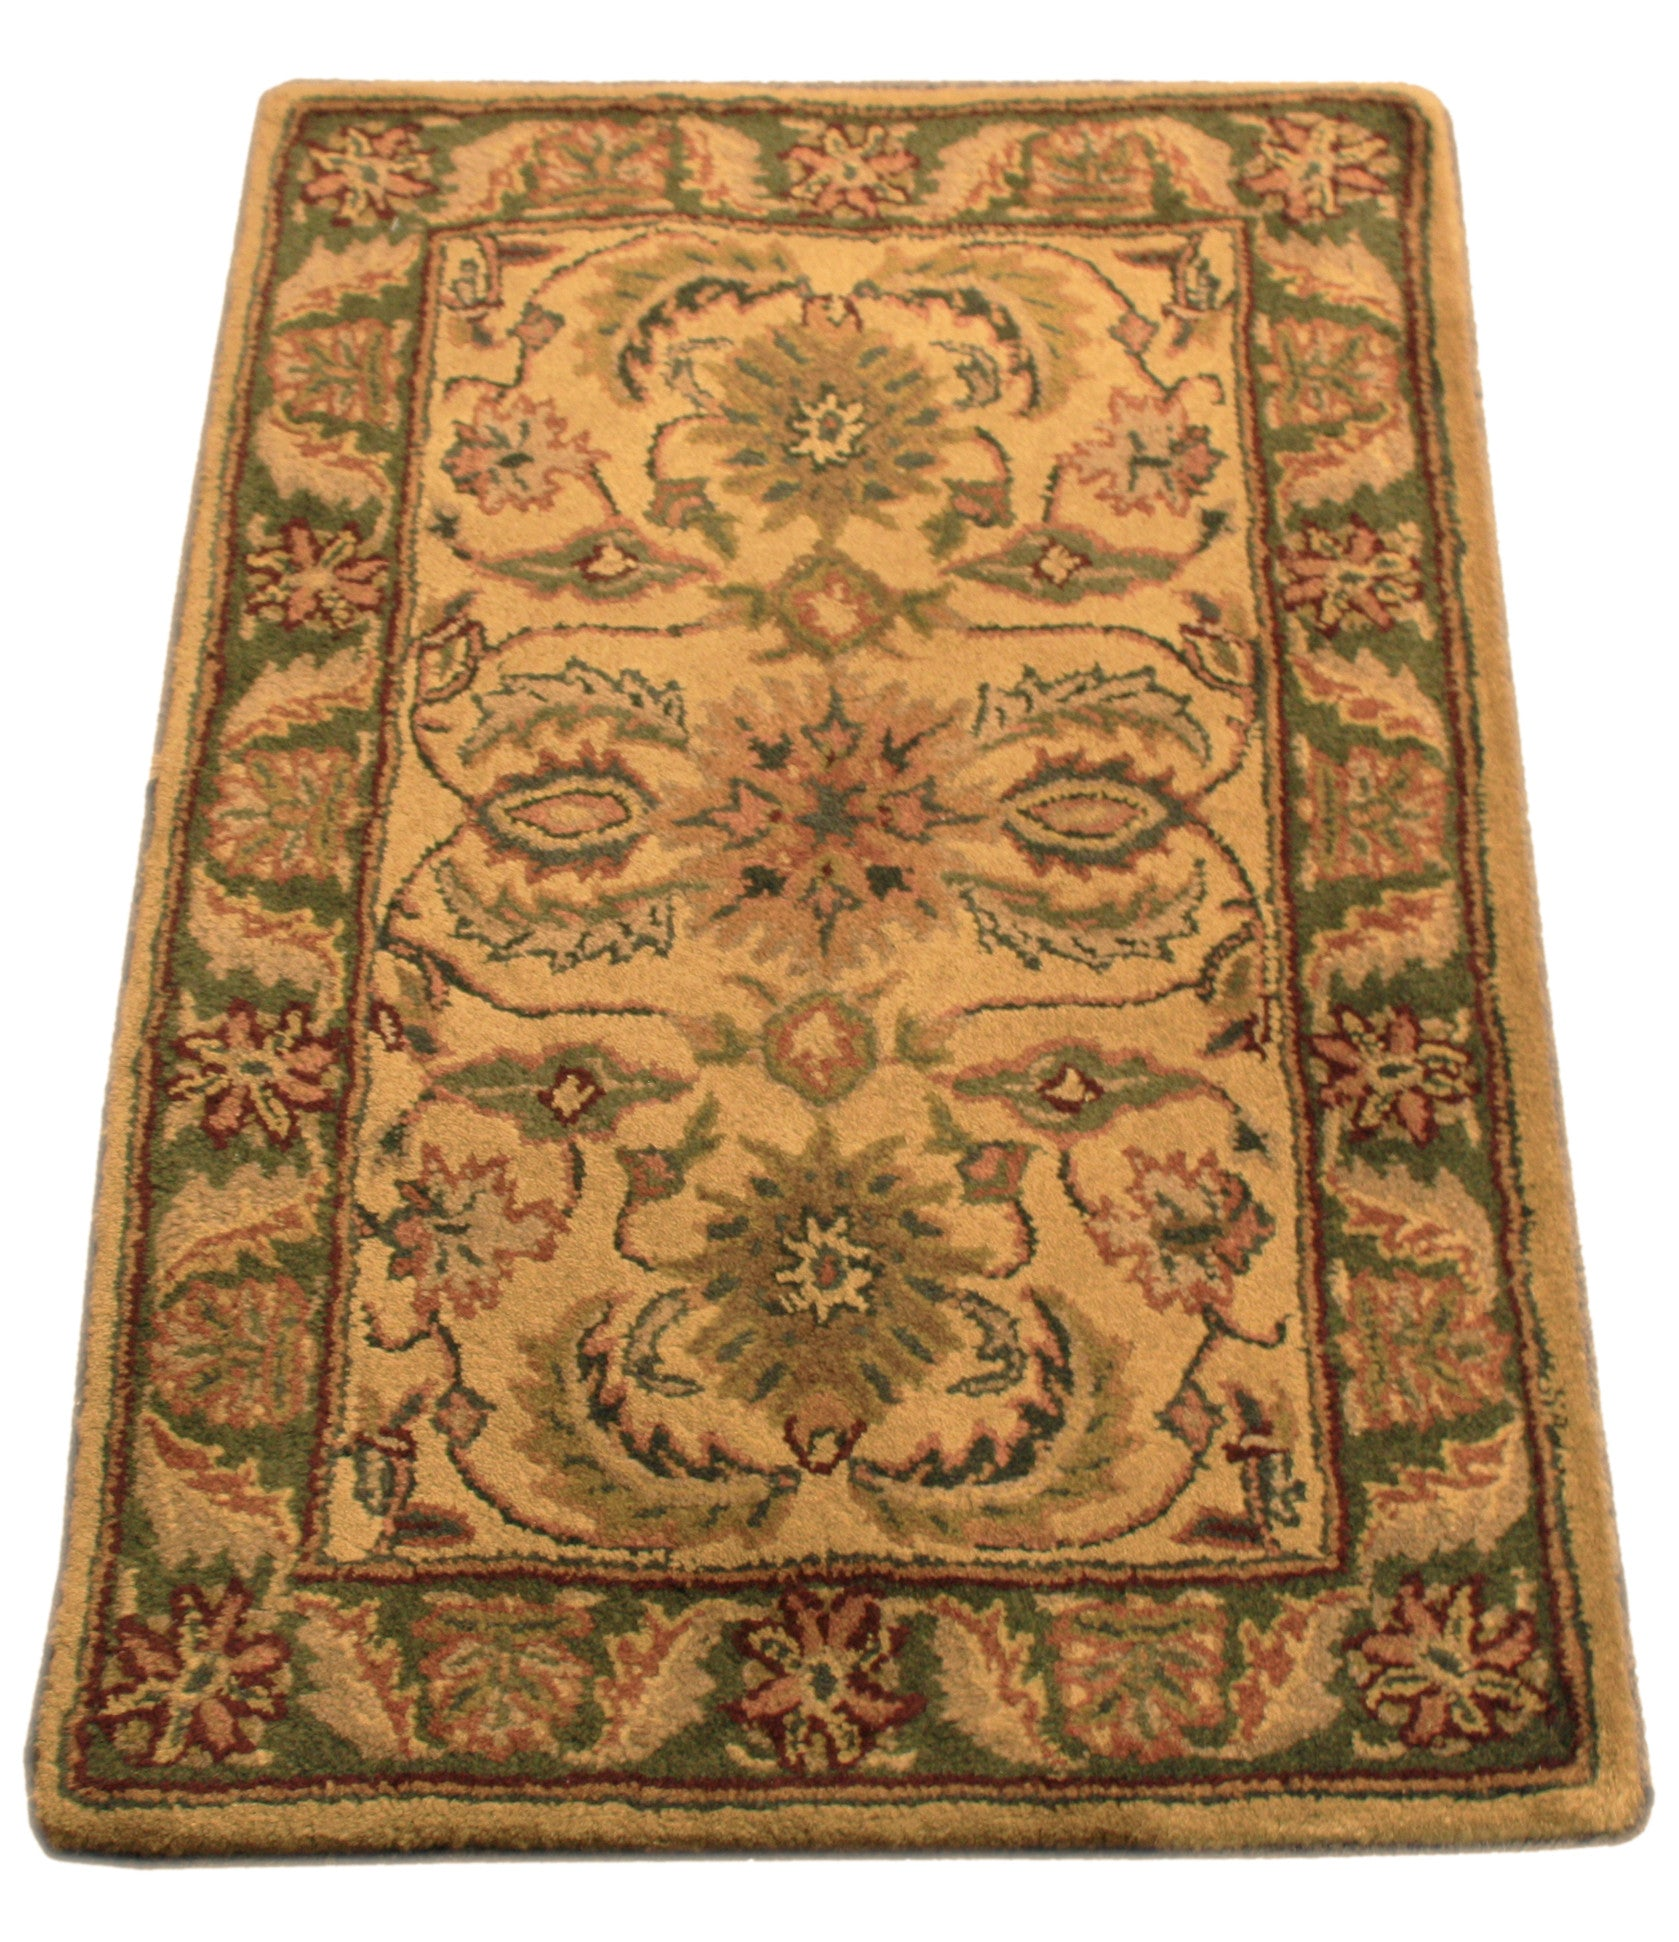 2x3 Tufted - Main Street Oriental Rugs